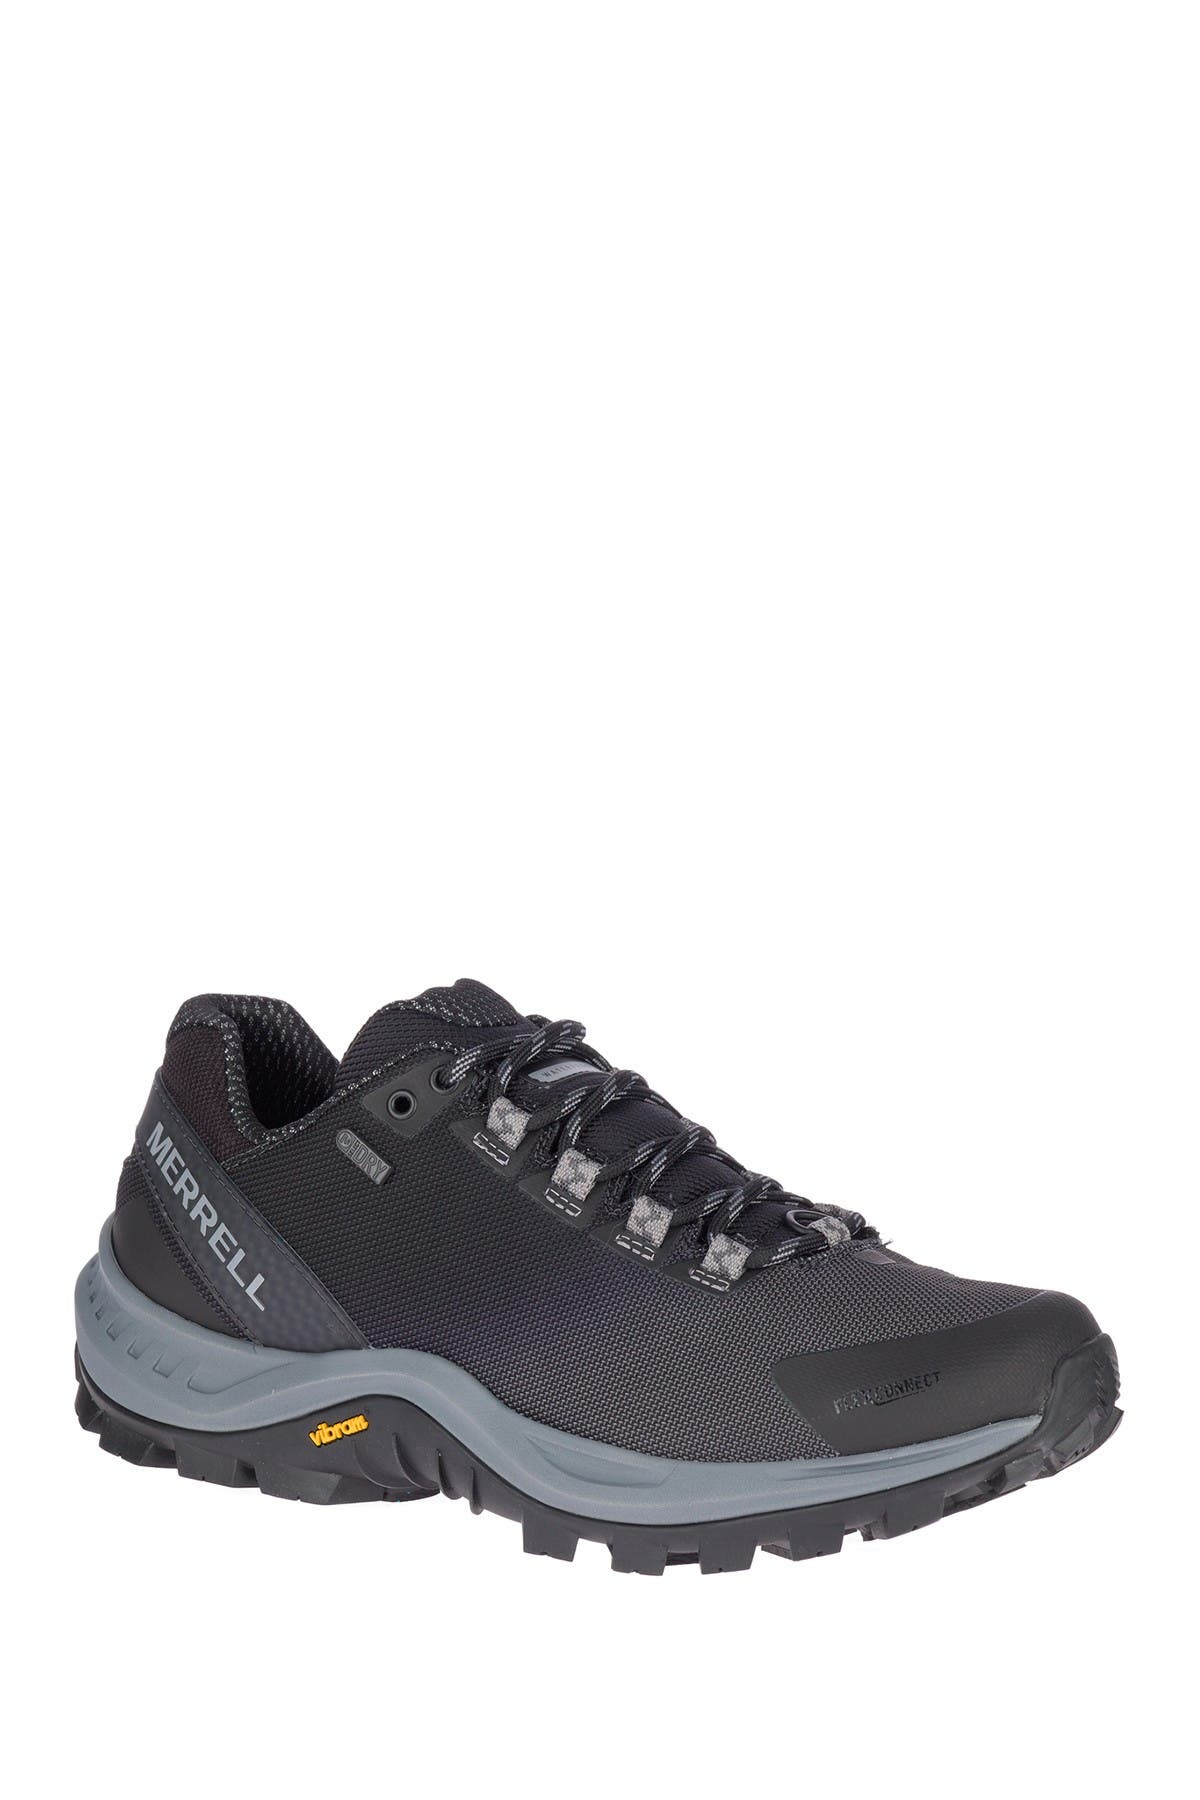 Image of Merrell Thermo Cross 2 Waterproof Hiking Shoe